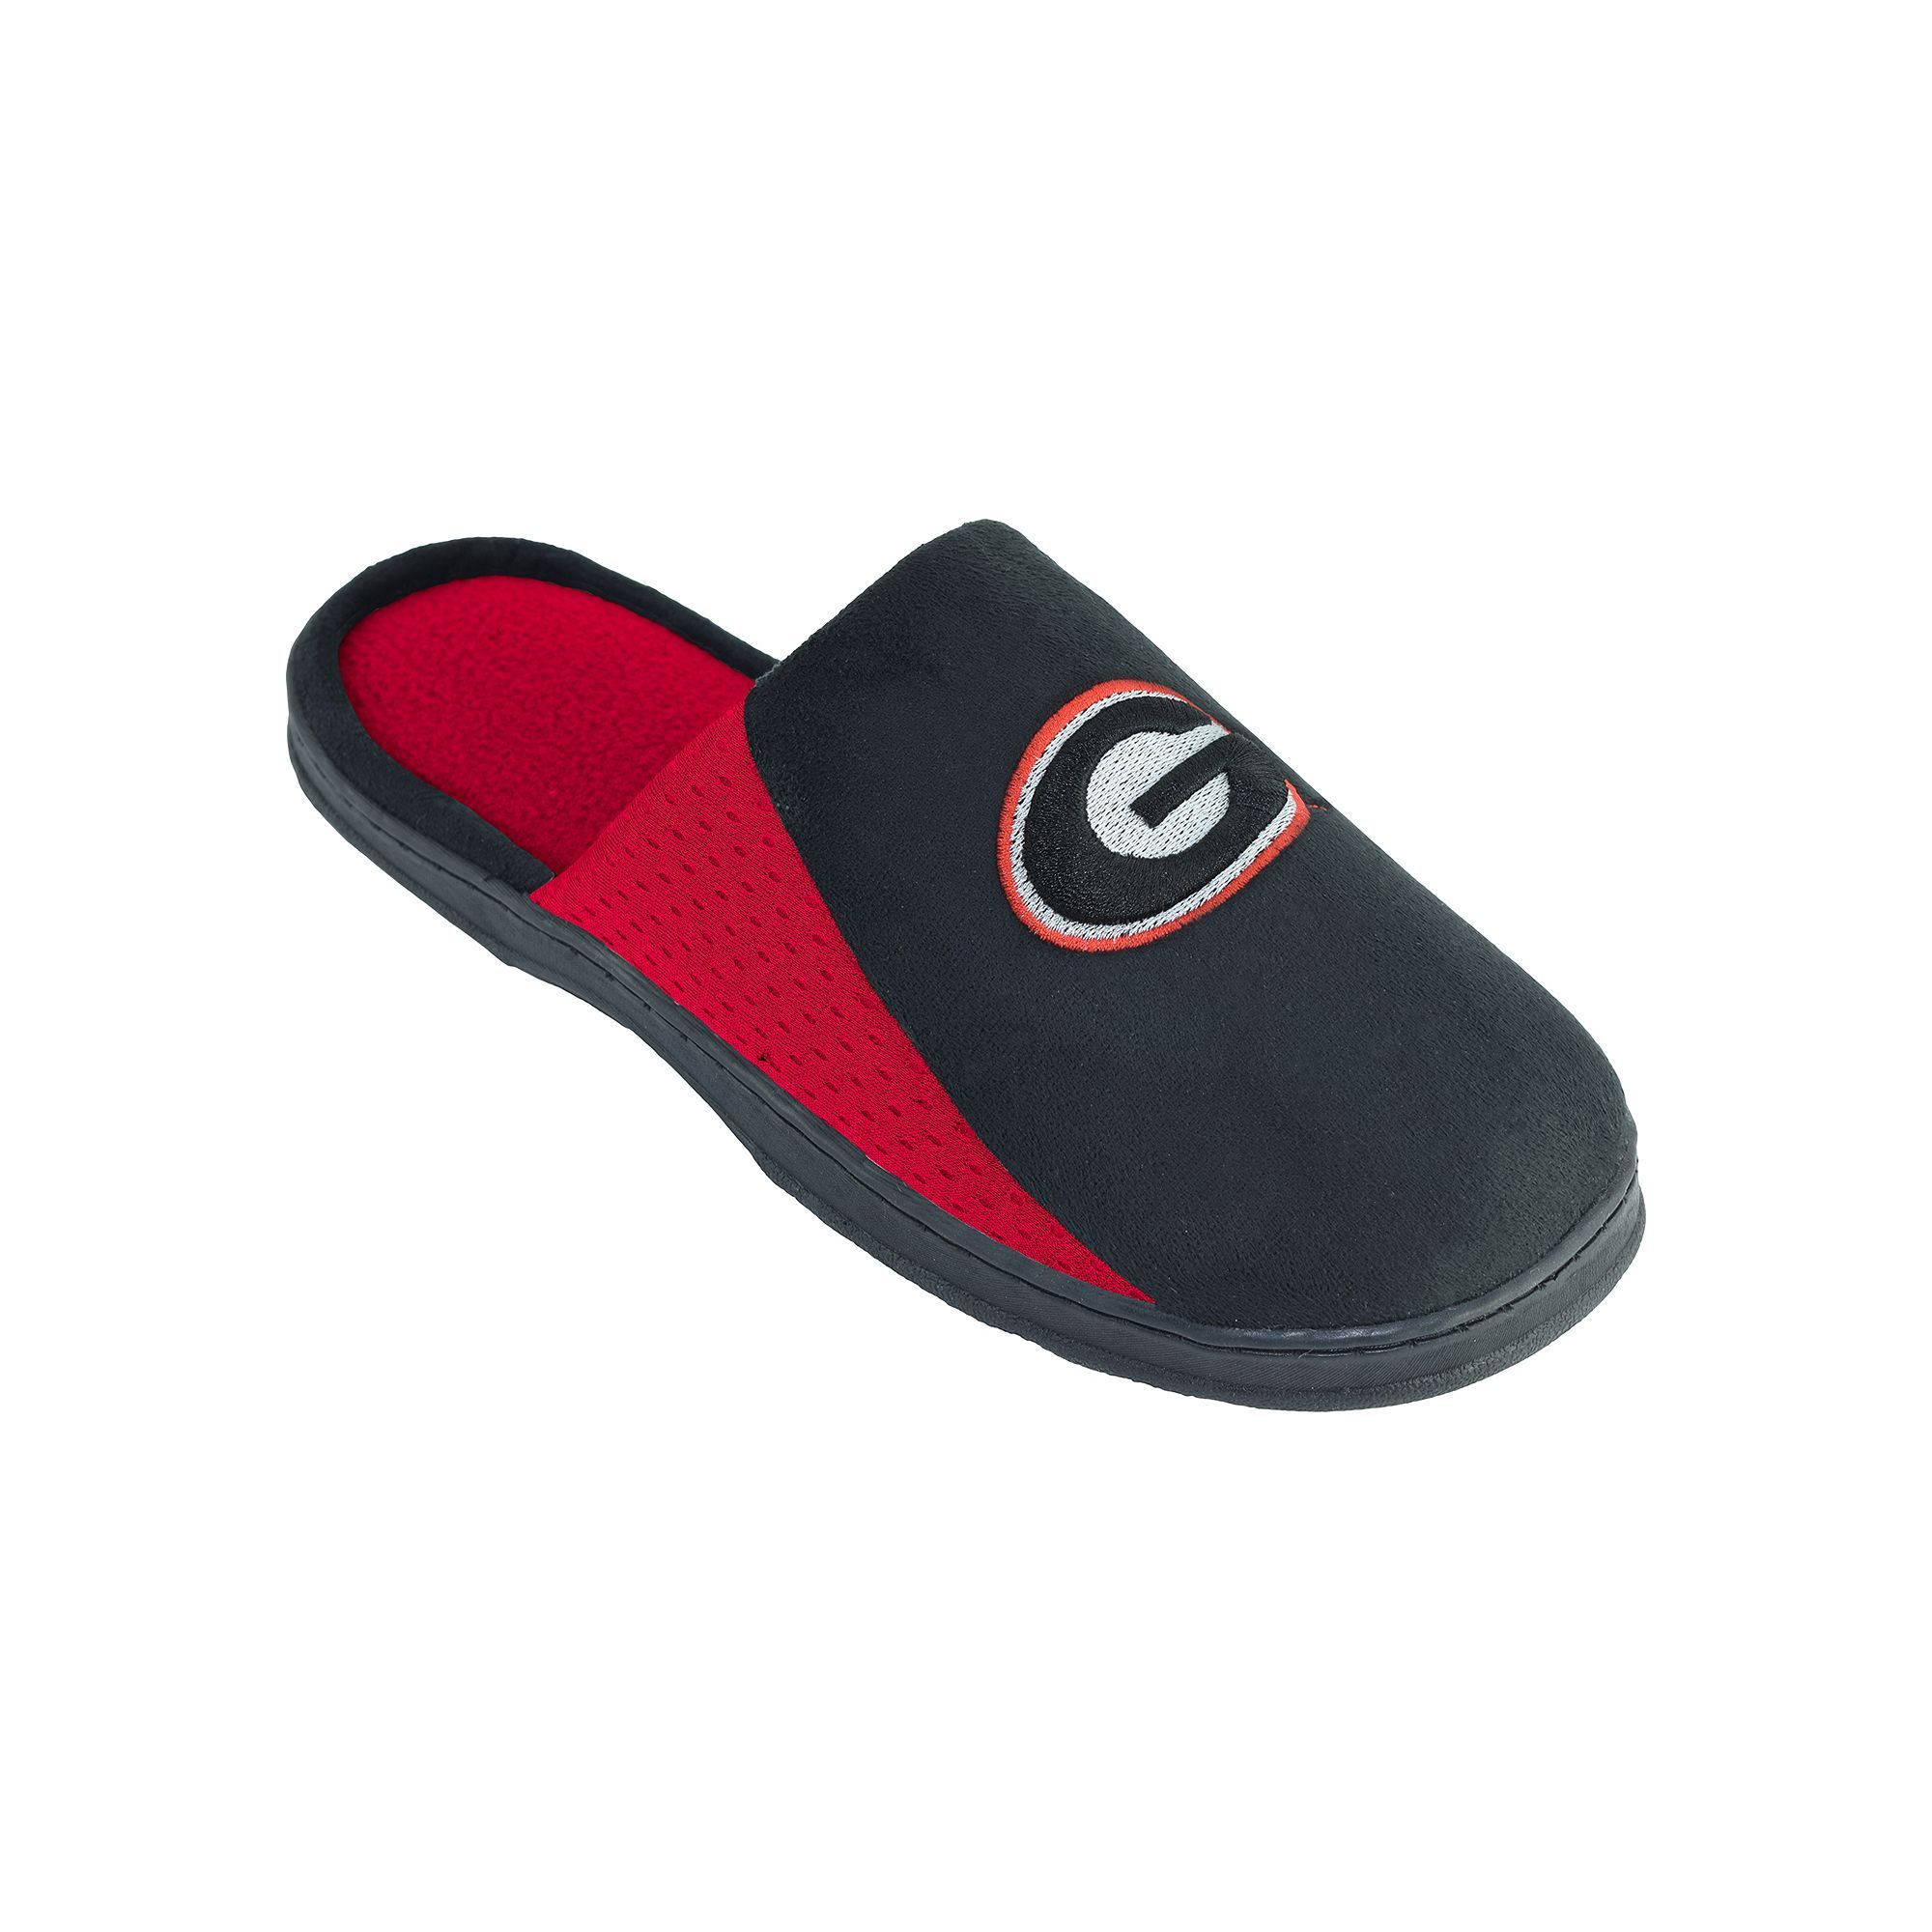 Men's Georgia Bulldogs Scuff ... Slipper Shoes clearance top quality clearance 2015 new free shipping sast outlet under $60 visit cheap online r6lEl3yfY5